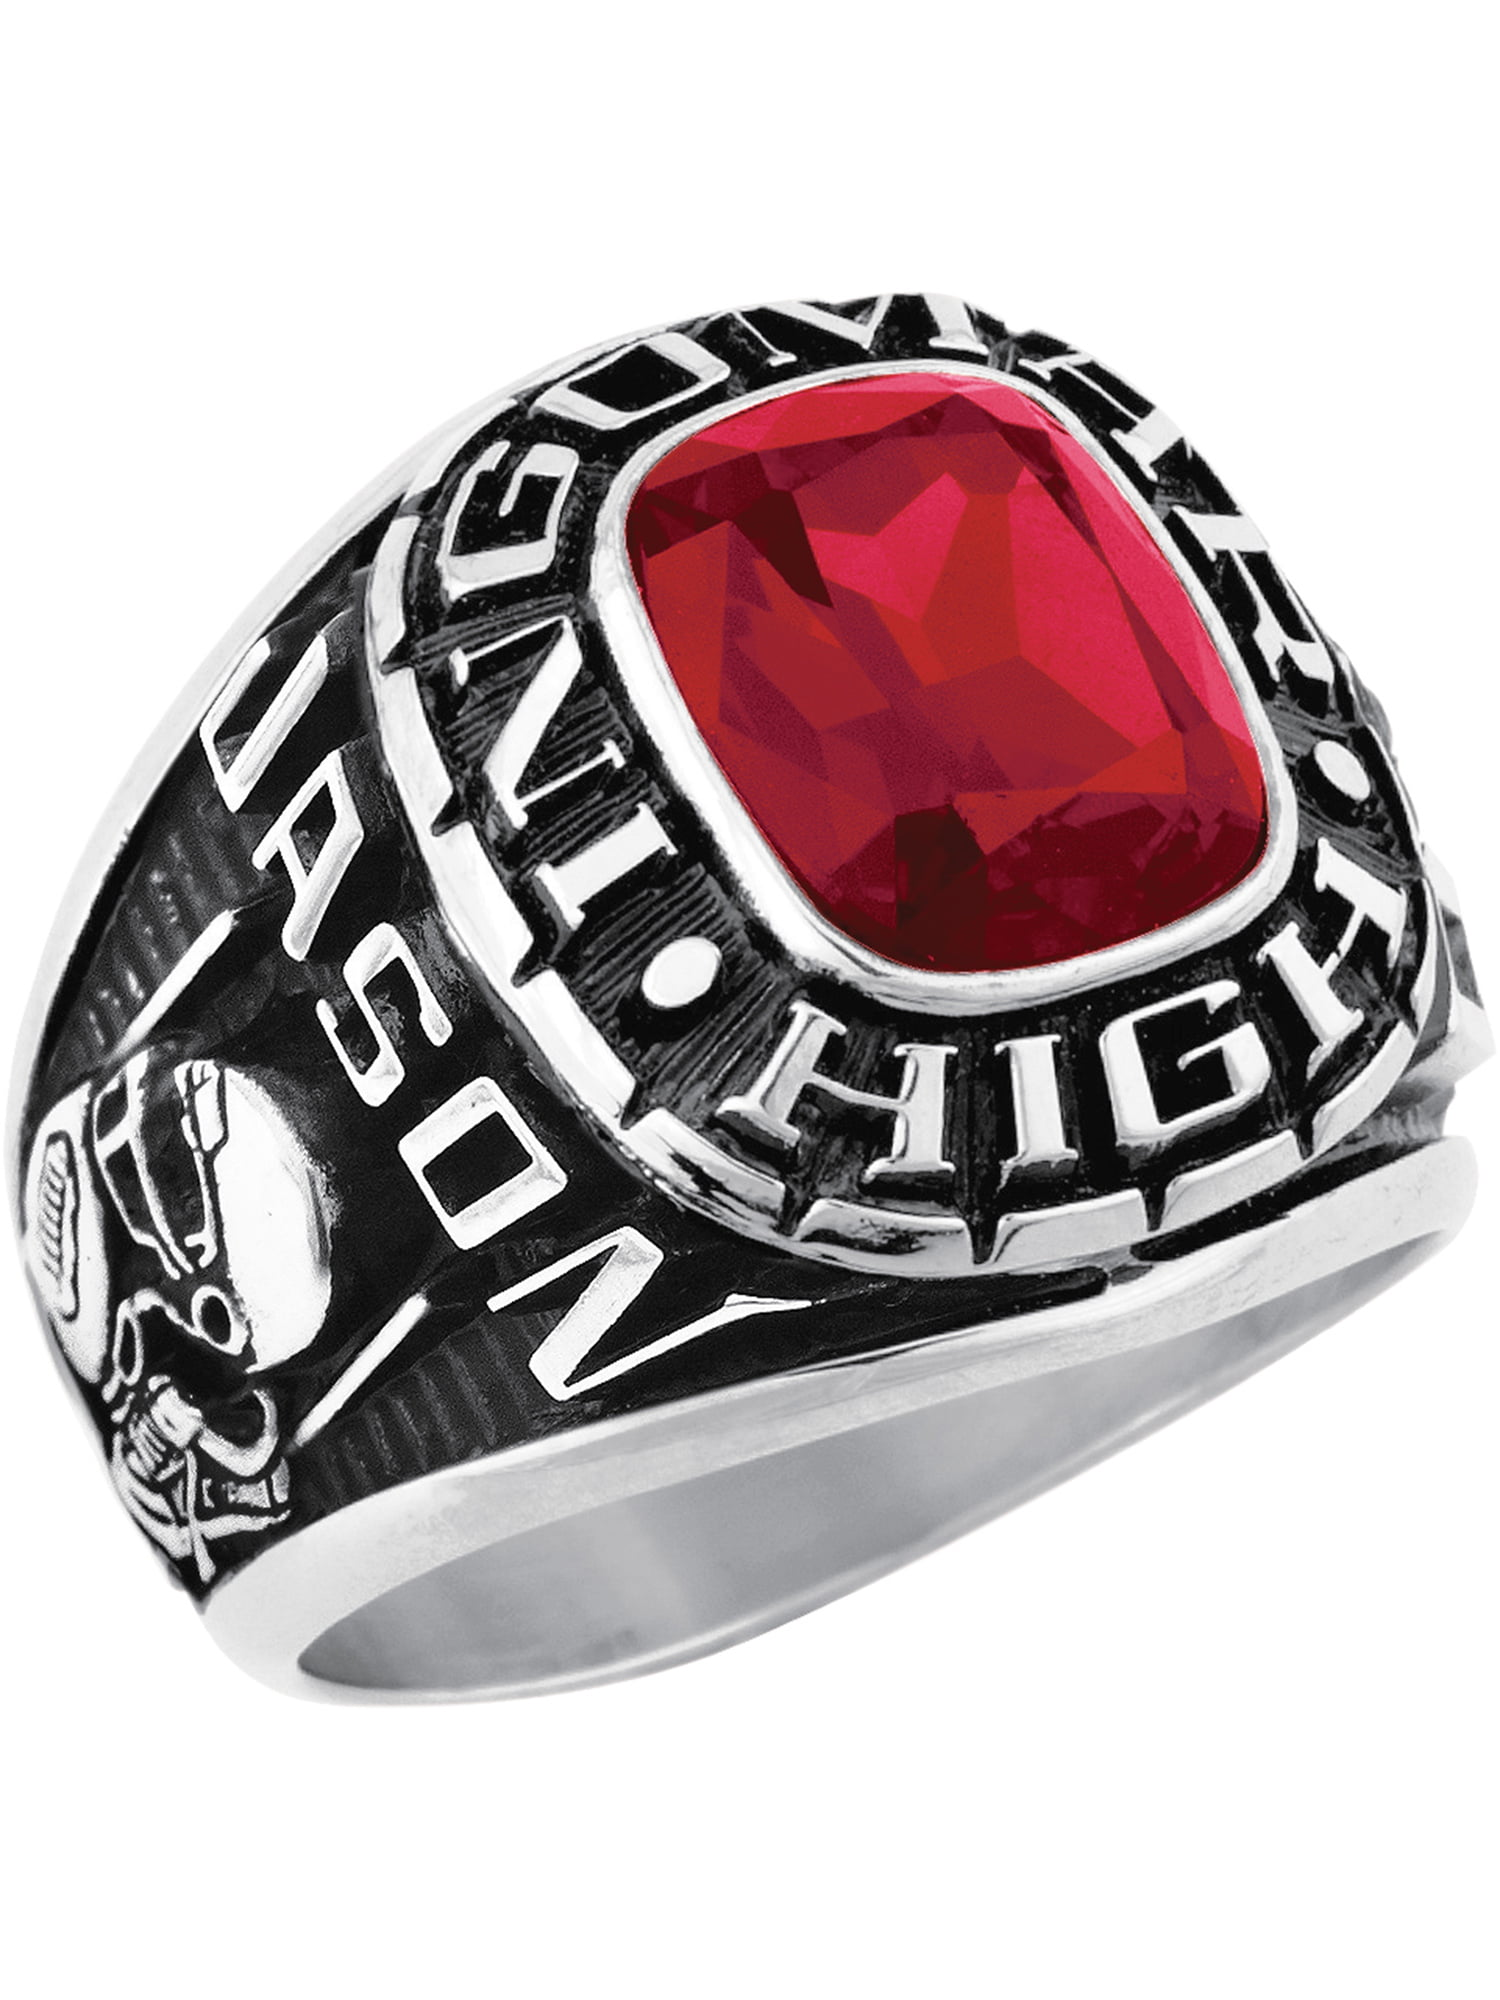 rings sooners t the have national their championship status rt twitter bfwvyqccyaefgvk co oklahoma ou on softball